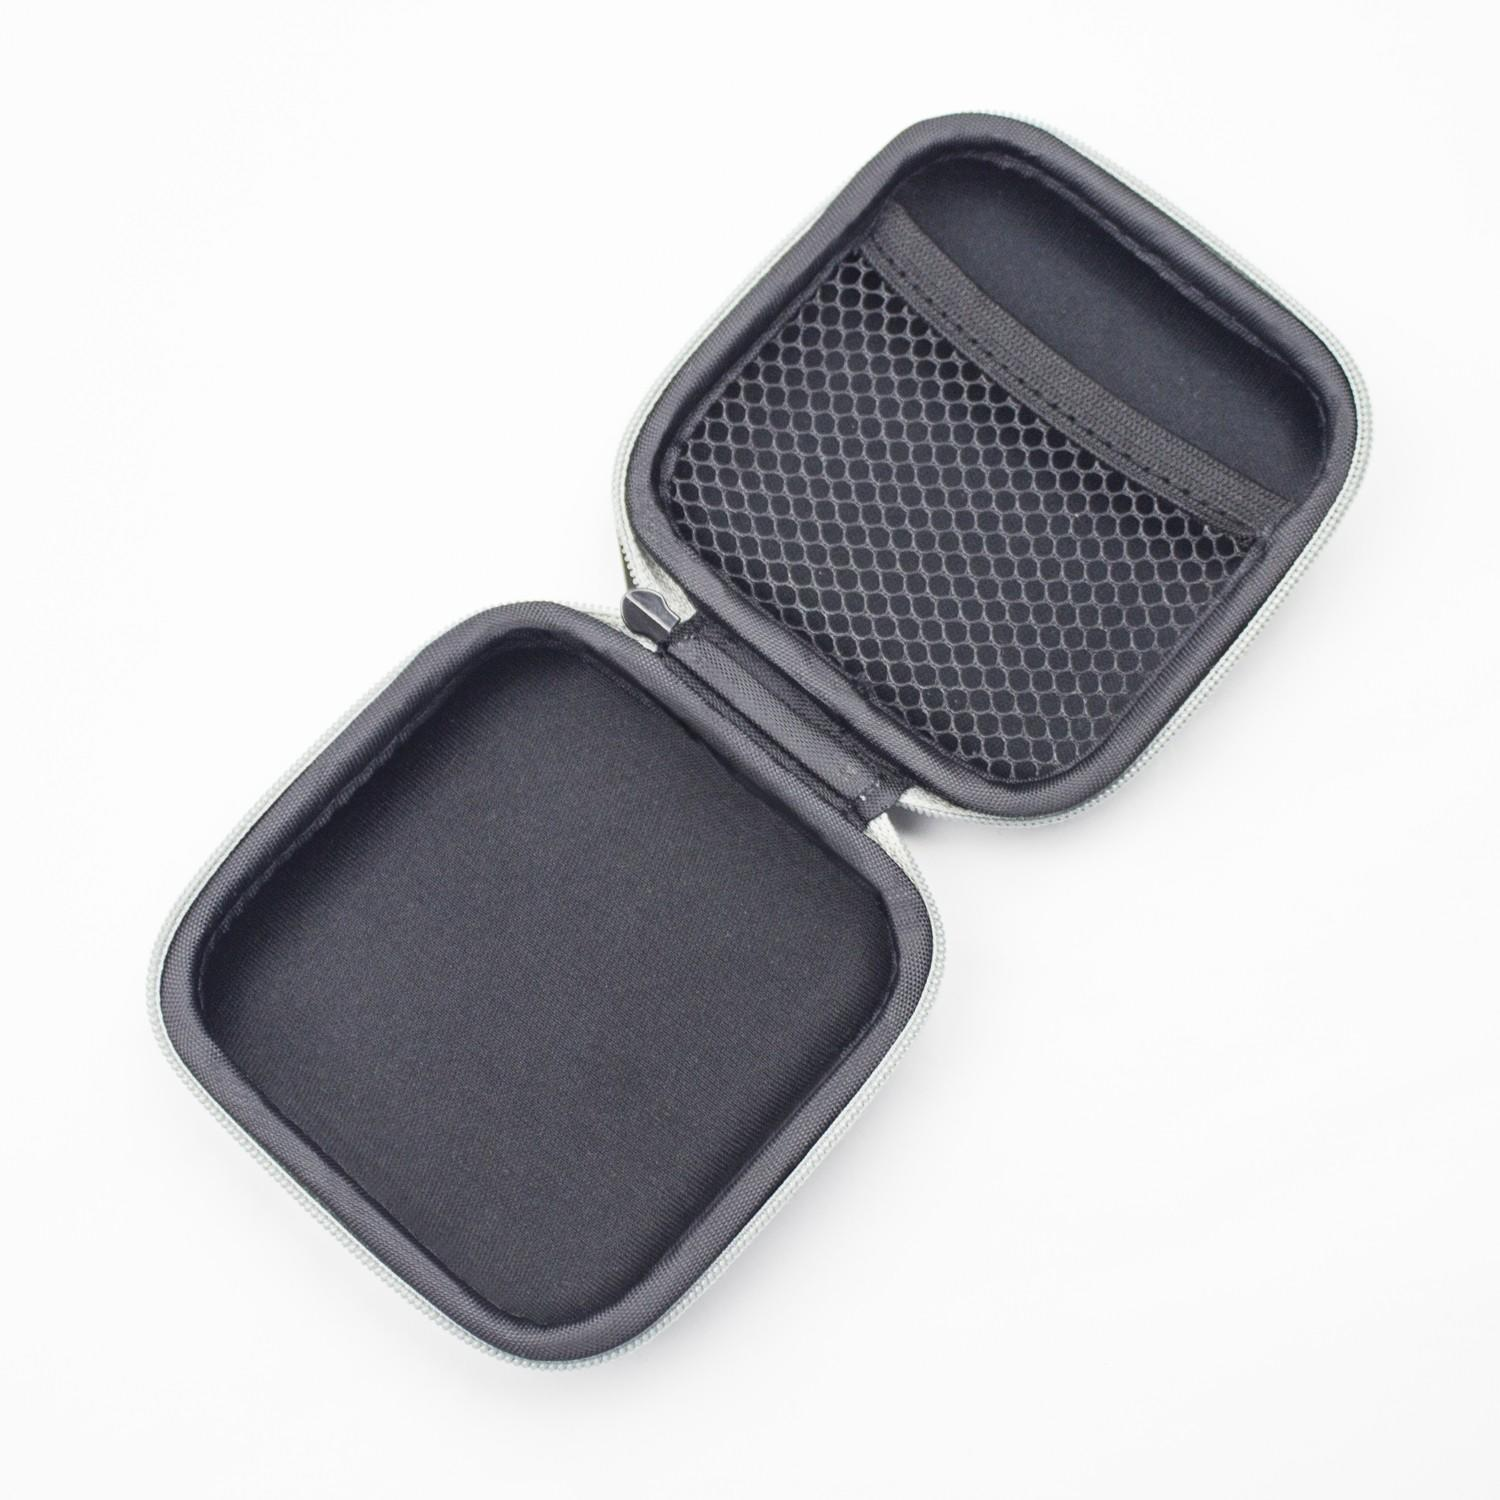 professional wireless headphone case bulk buy for earbuds